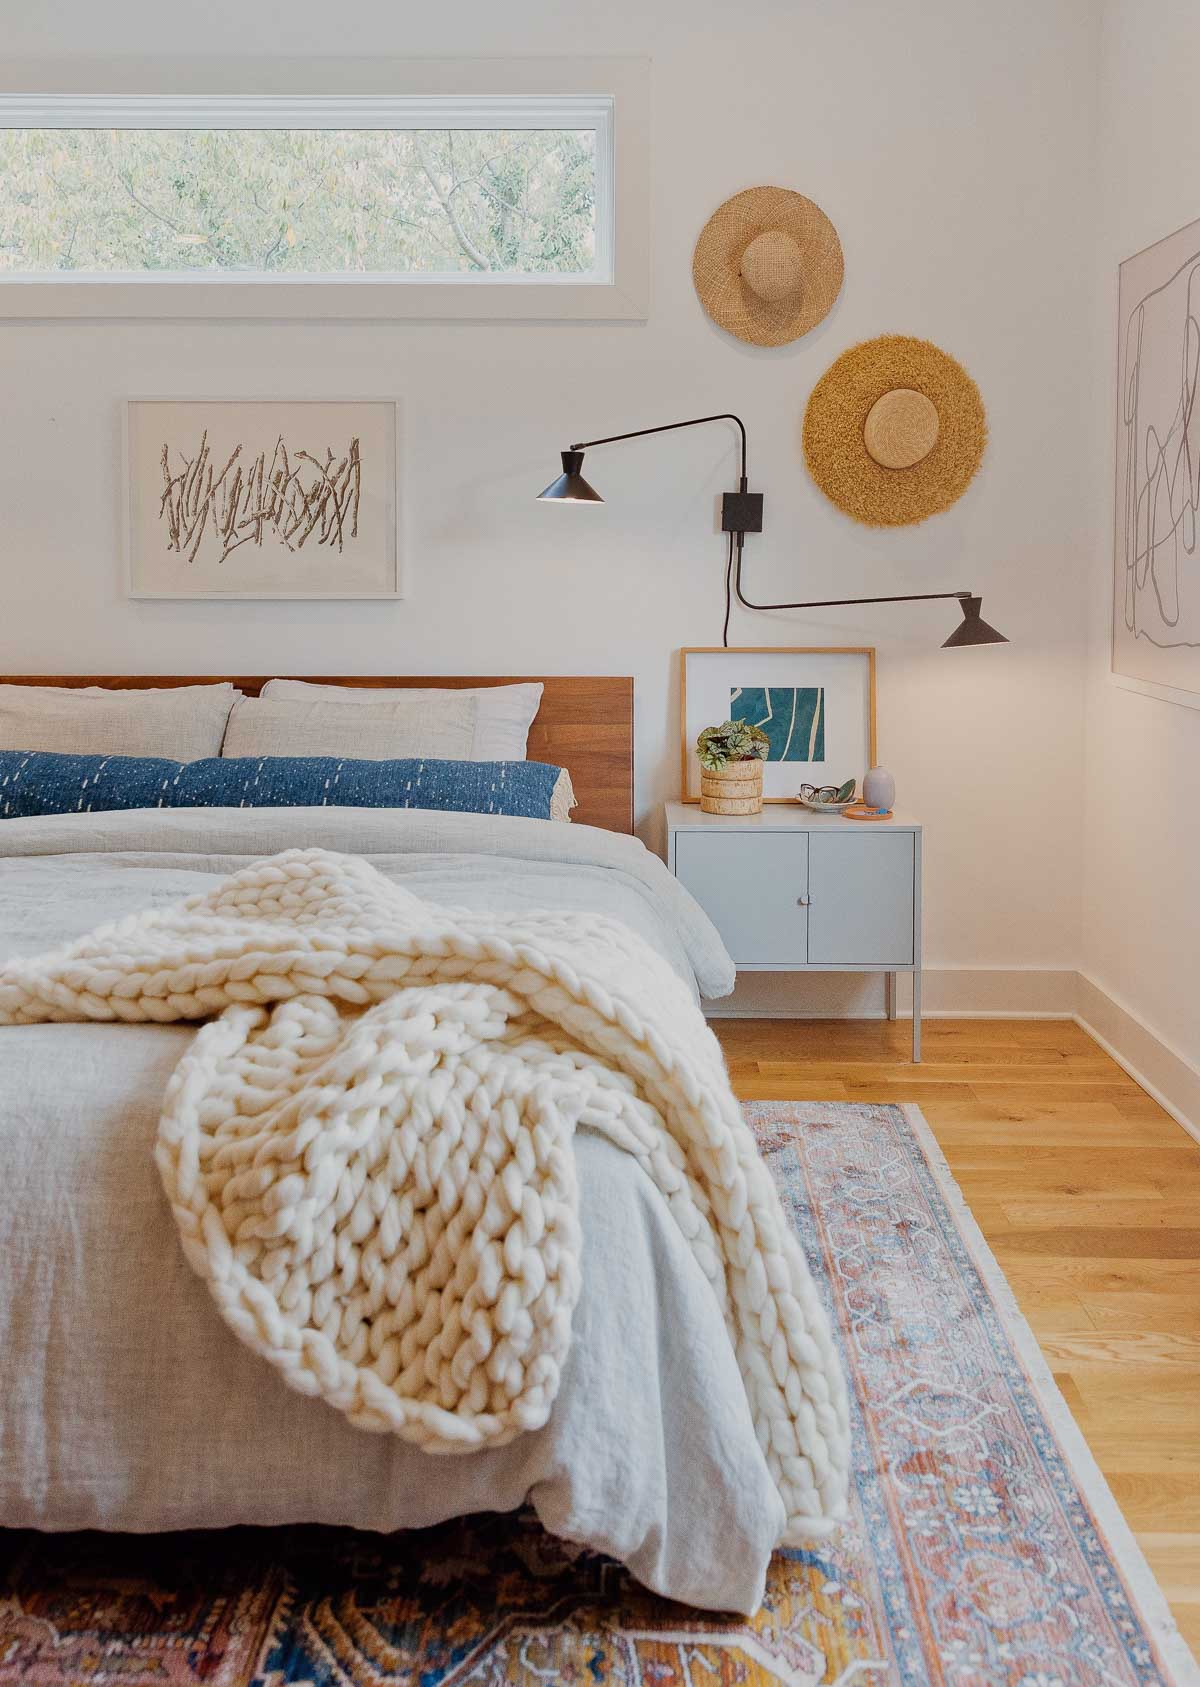 A thick, cozy knit blanket hangs off the edge of a platform bed.